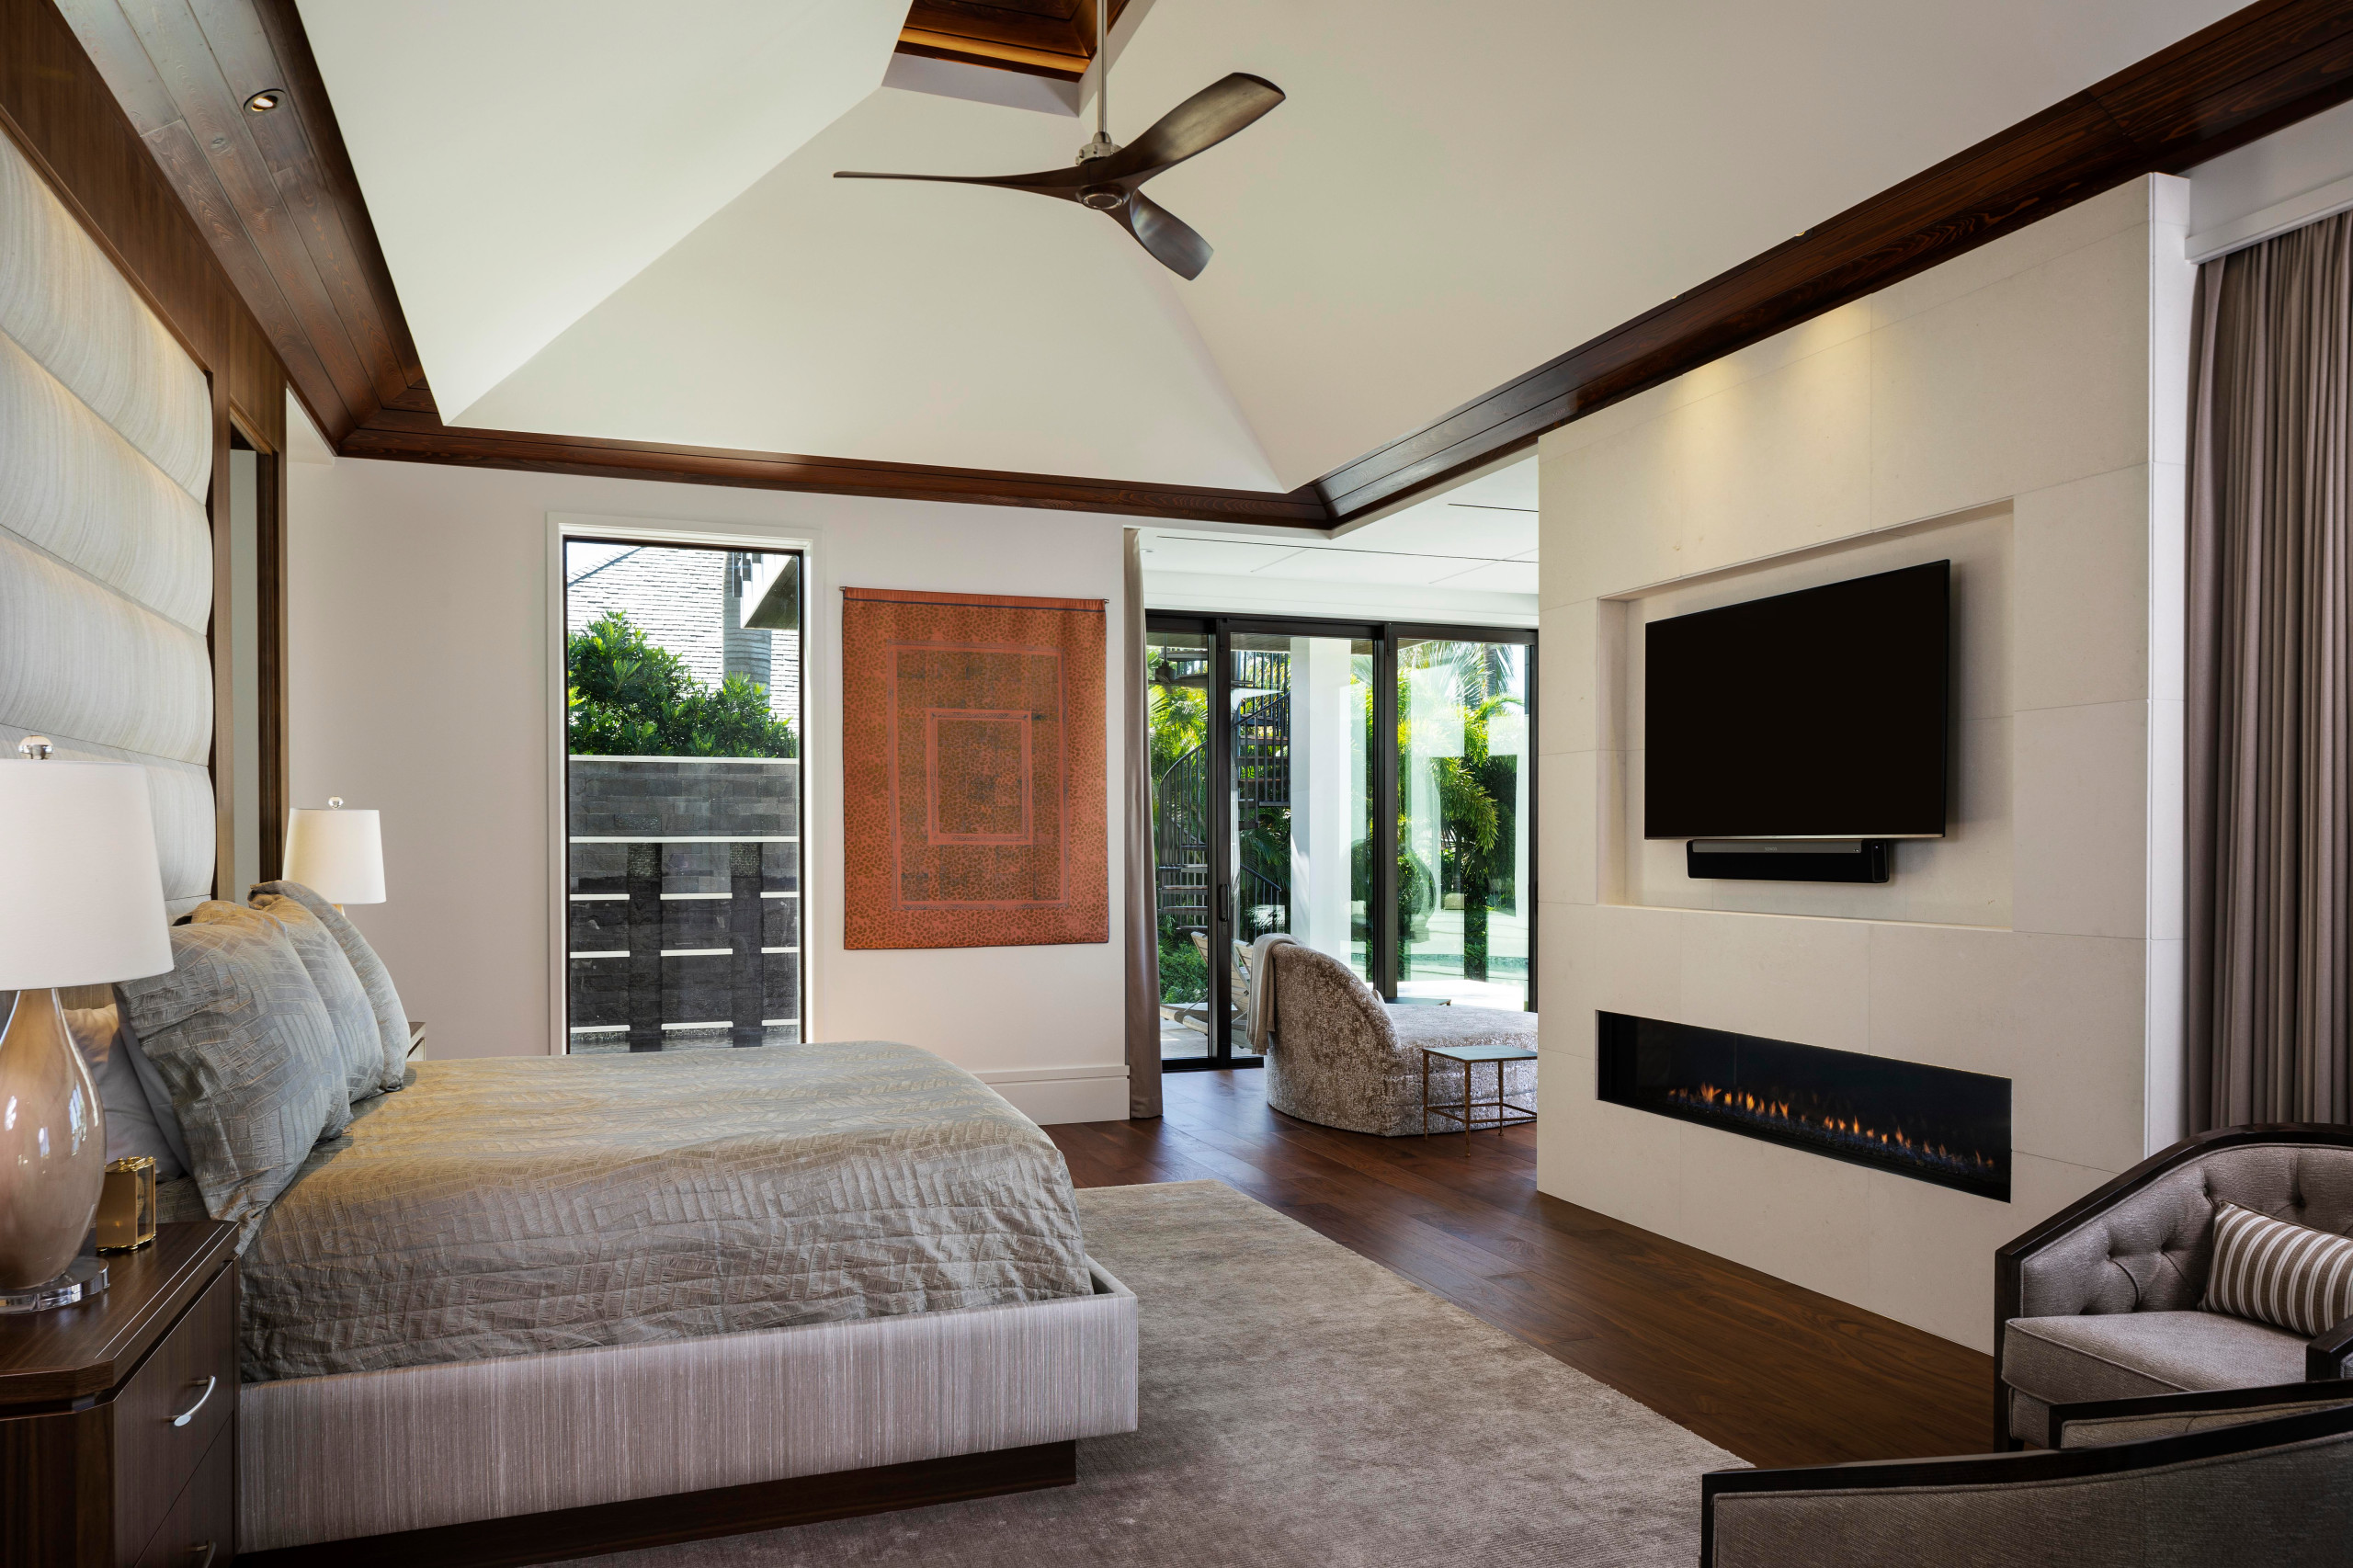 Must See Bedroom Pictures Ideas Before You Renovate 2020 Houzz